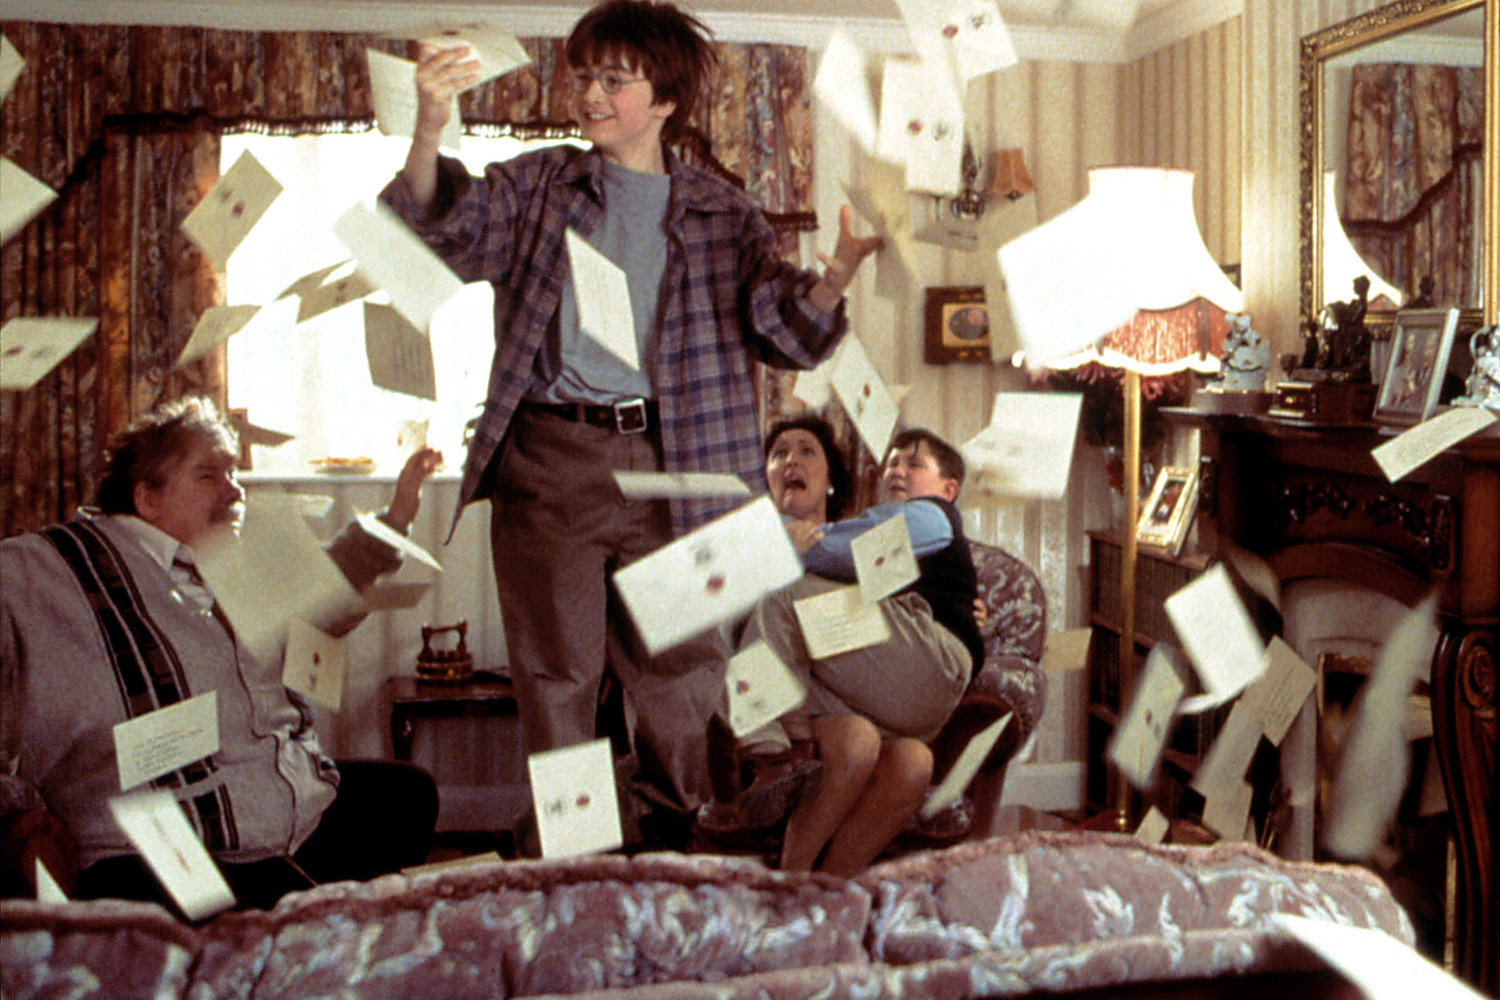 Harry receives his Hogwarts letters